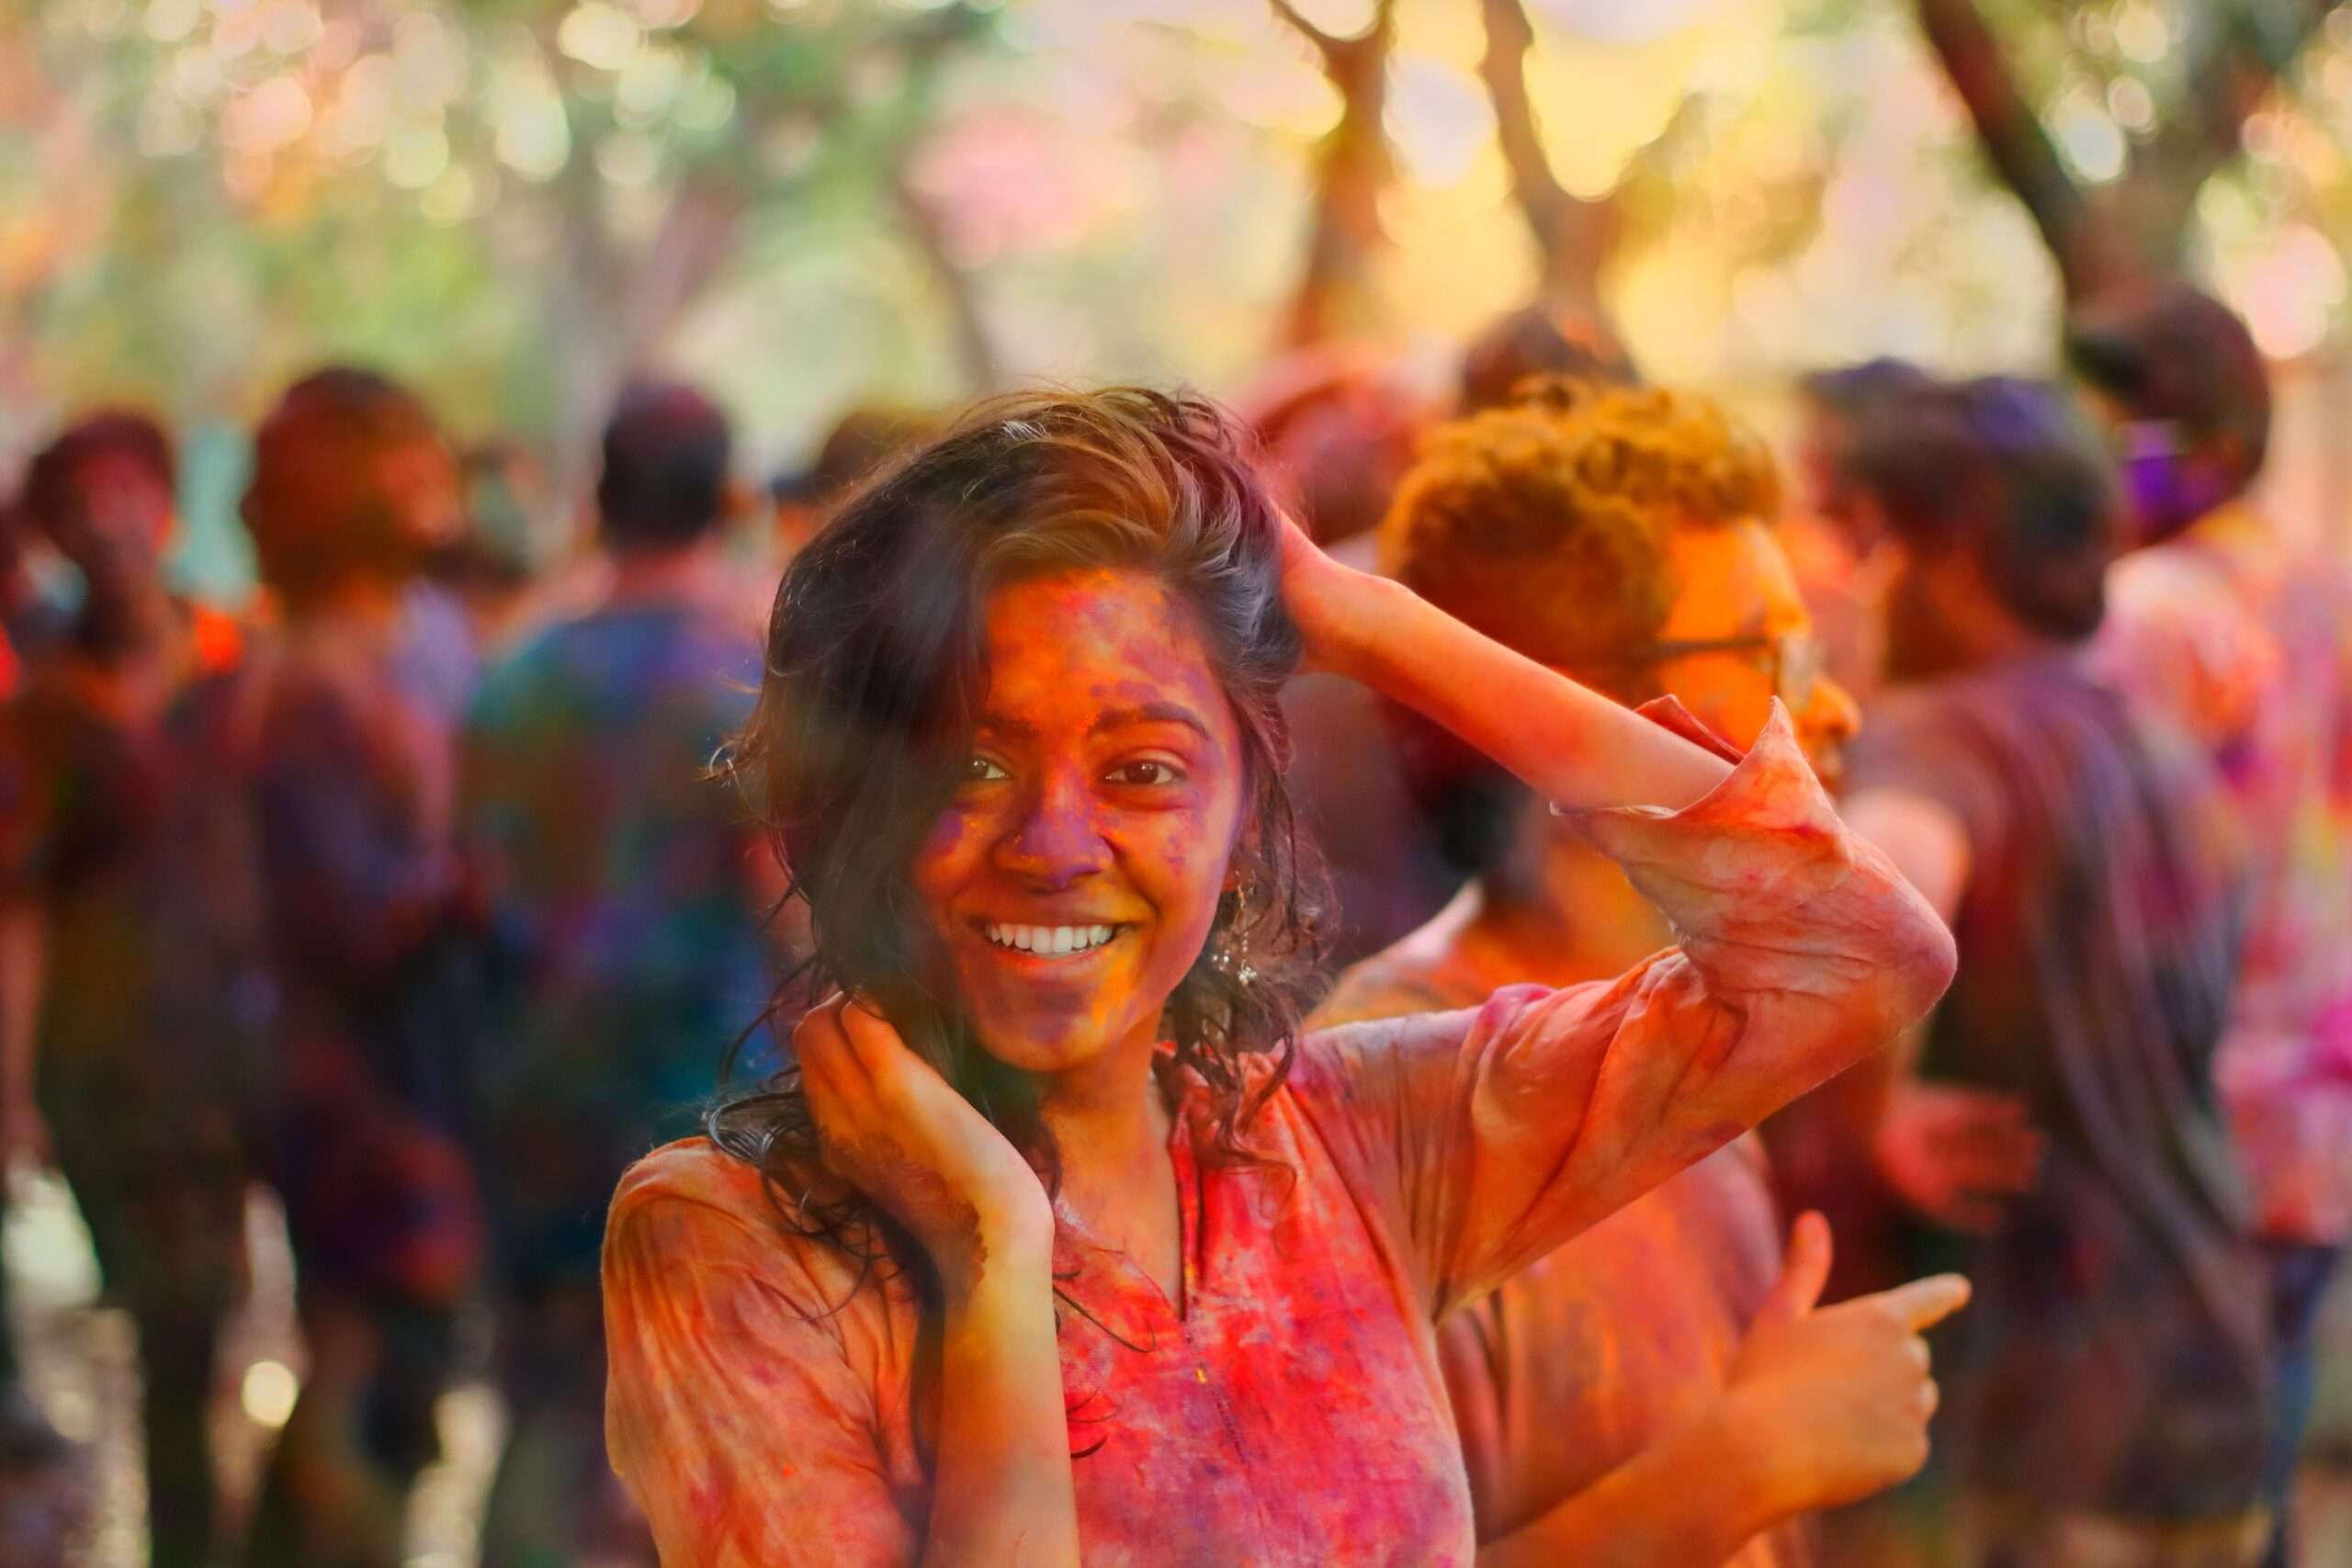 Girl covered in colourful powder smiles during celebration of Holi festival